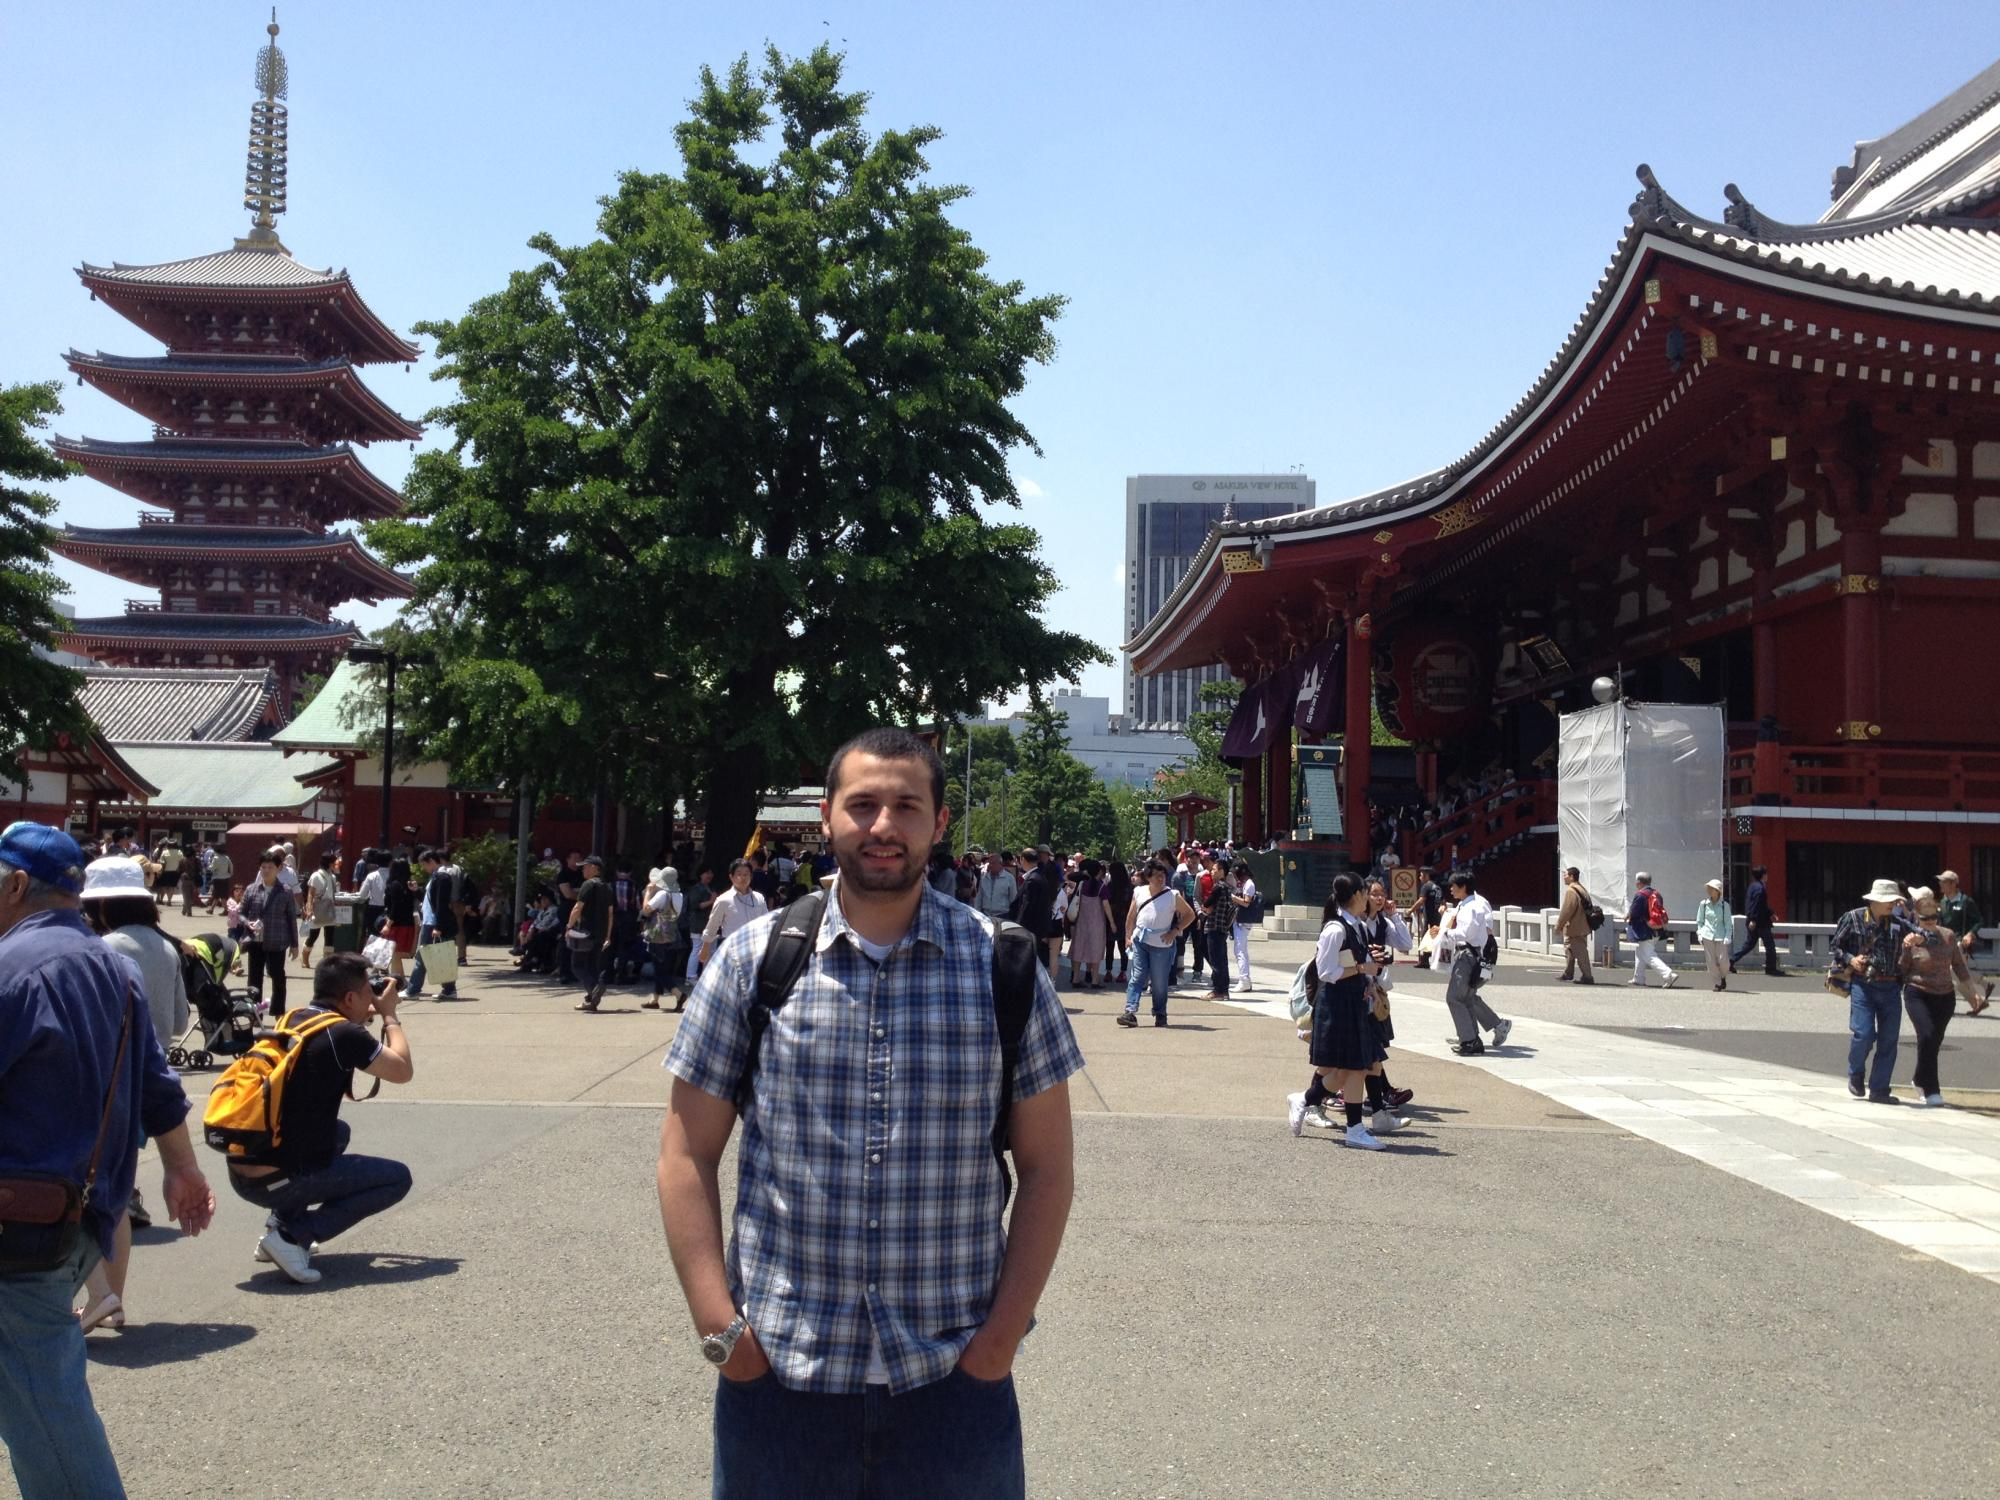 Amer Taleb in Japan, as part of the Roy Howard Fellowship where he visited with members of the Wall Street Journal and the Associated Press.